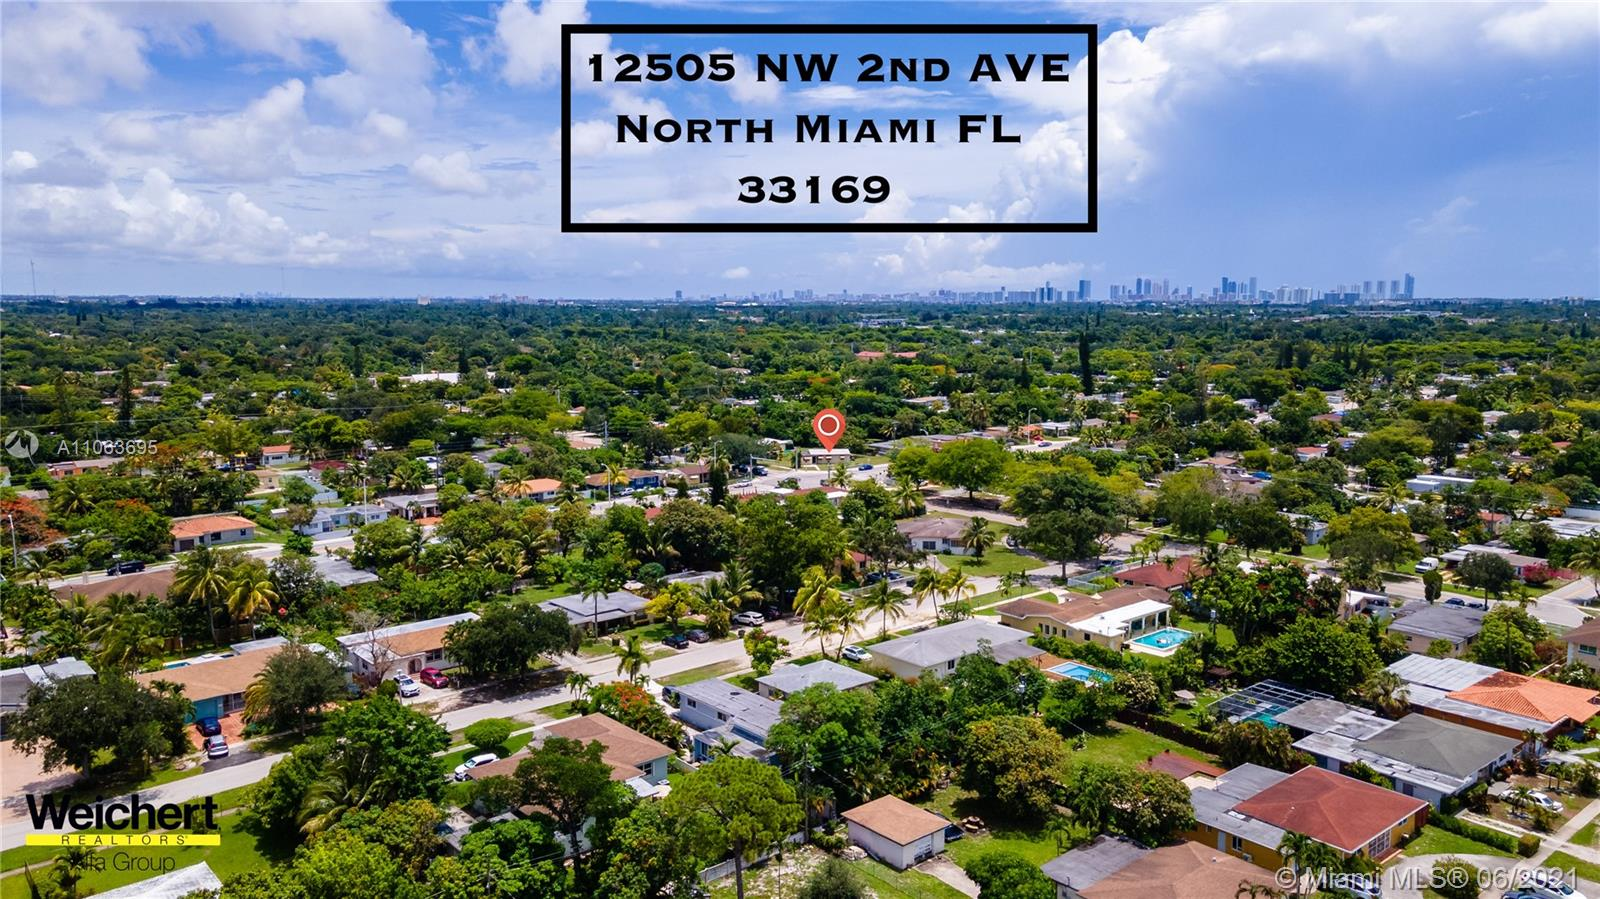 12505 NW 2nd Ave, North Miami, Florida 33168